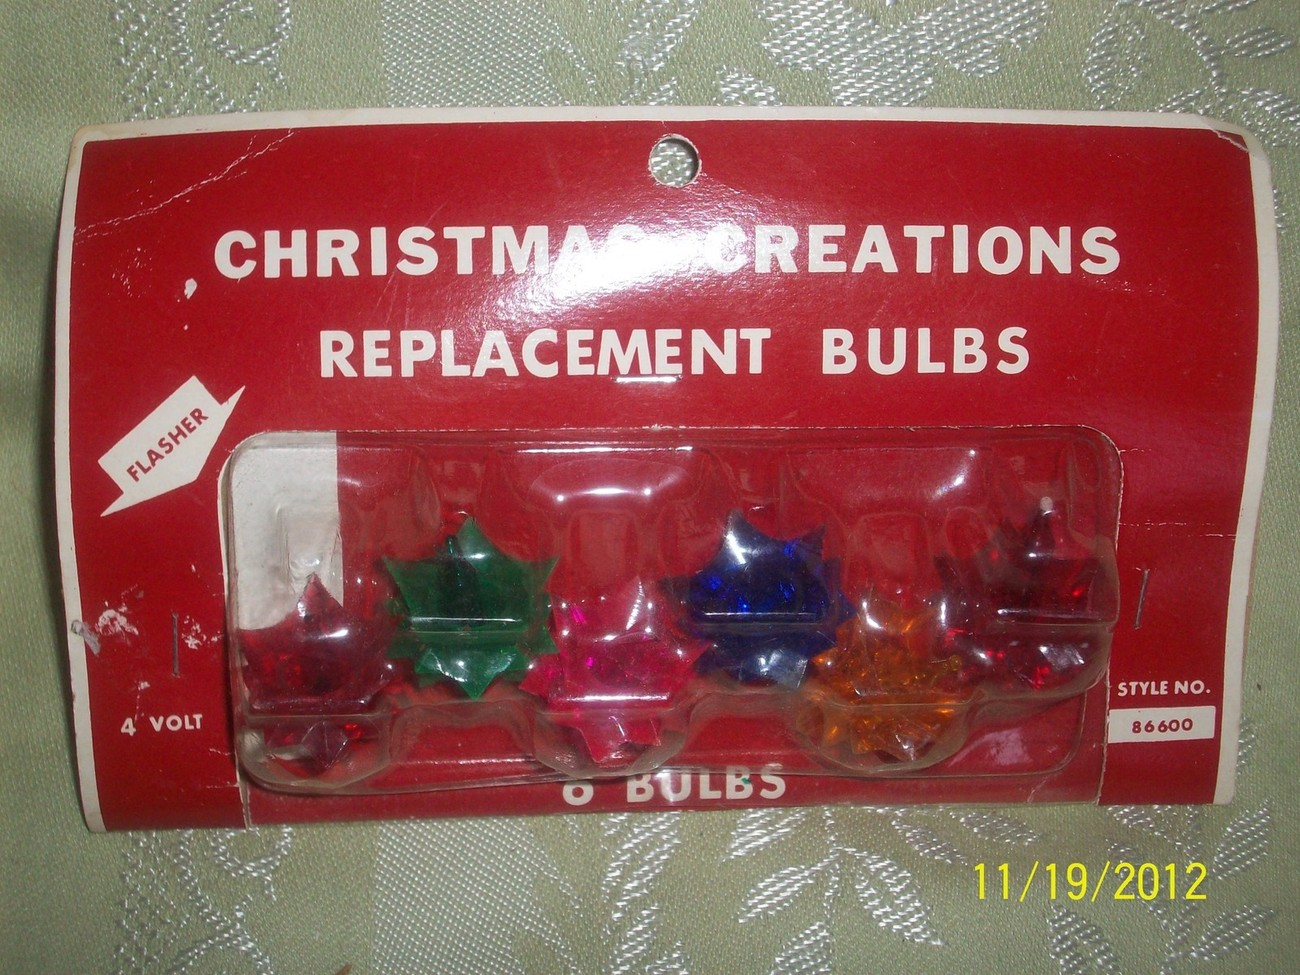 MOC Vintage Christmas Star Creations Replacement Bulbs on Card